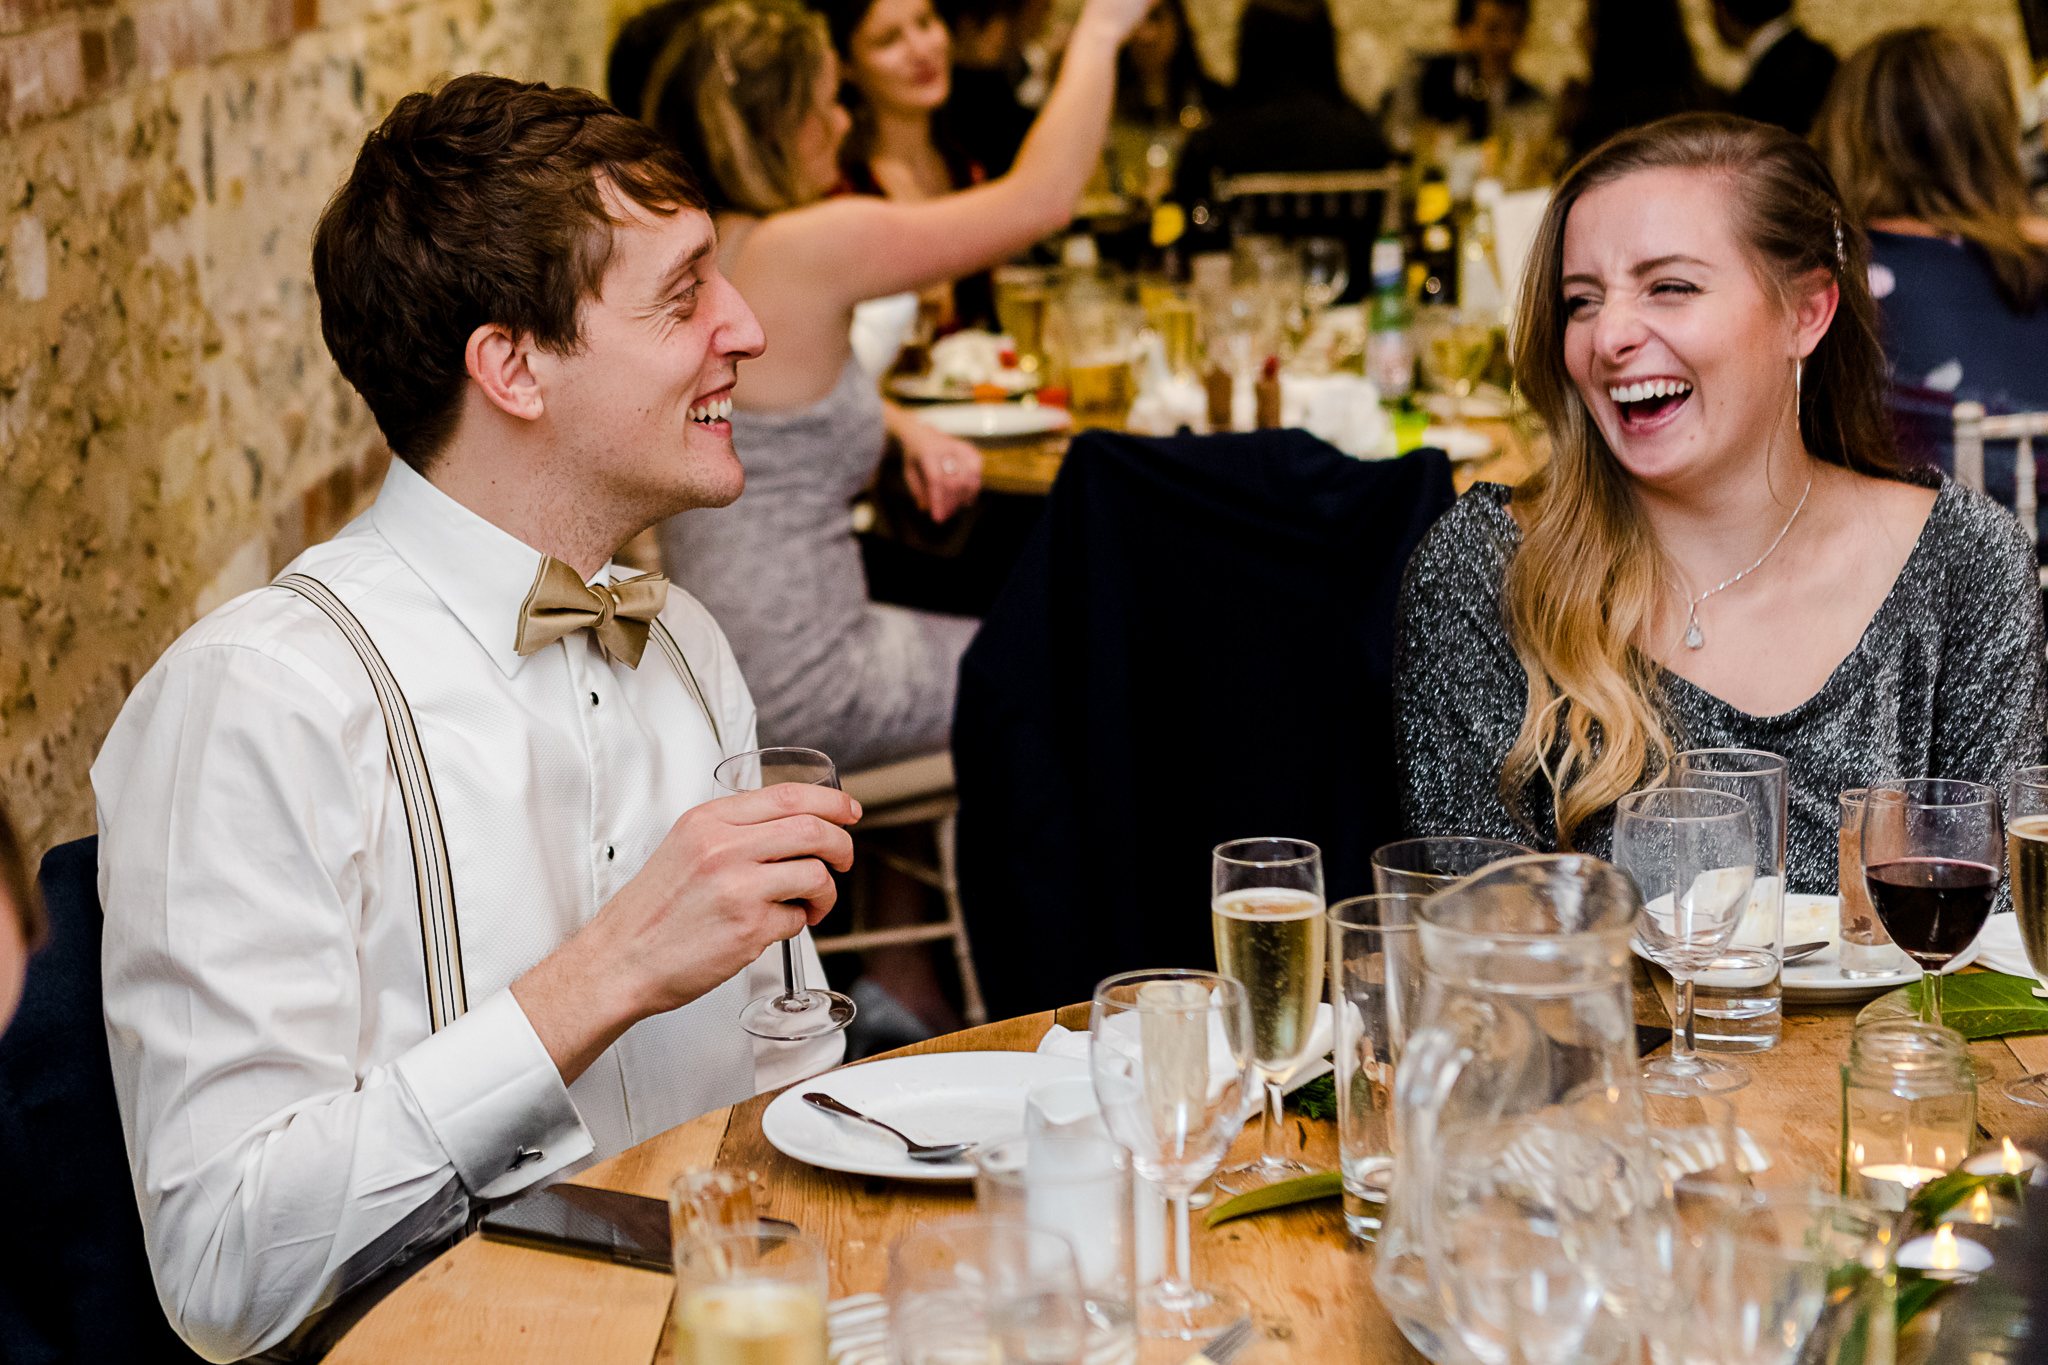 The Gathering Barn Wedding - Art by Design Photography - Speeches